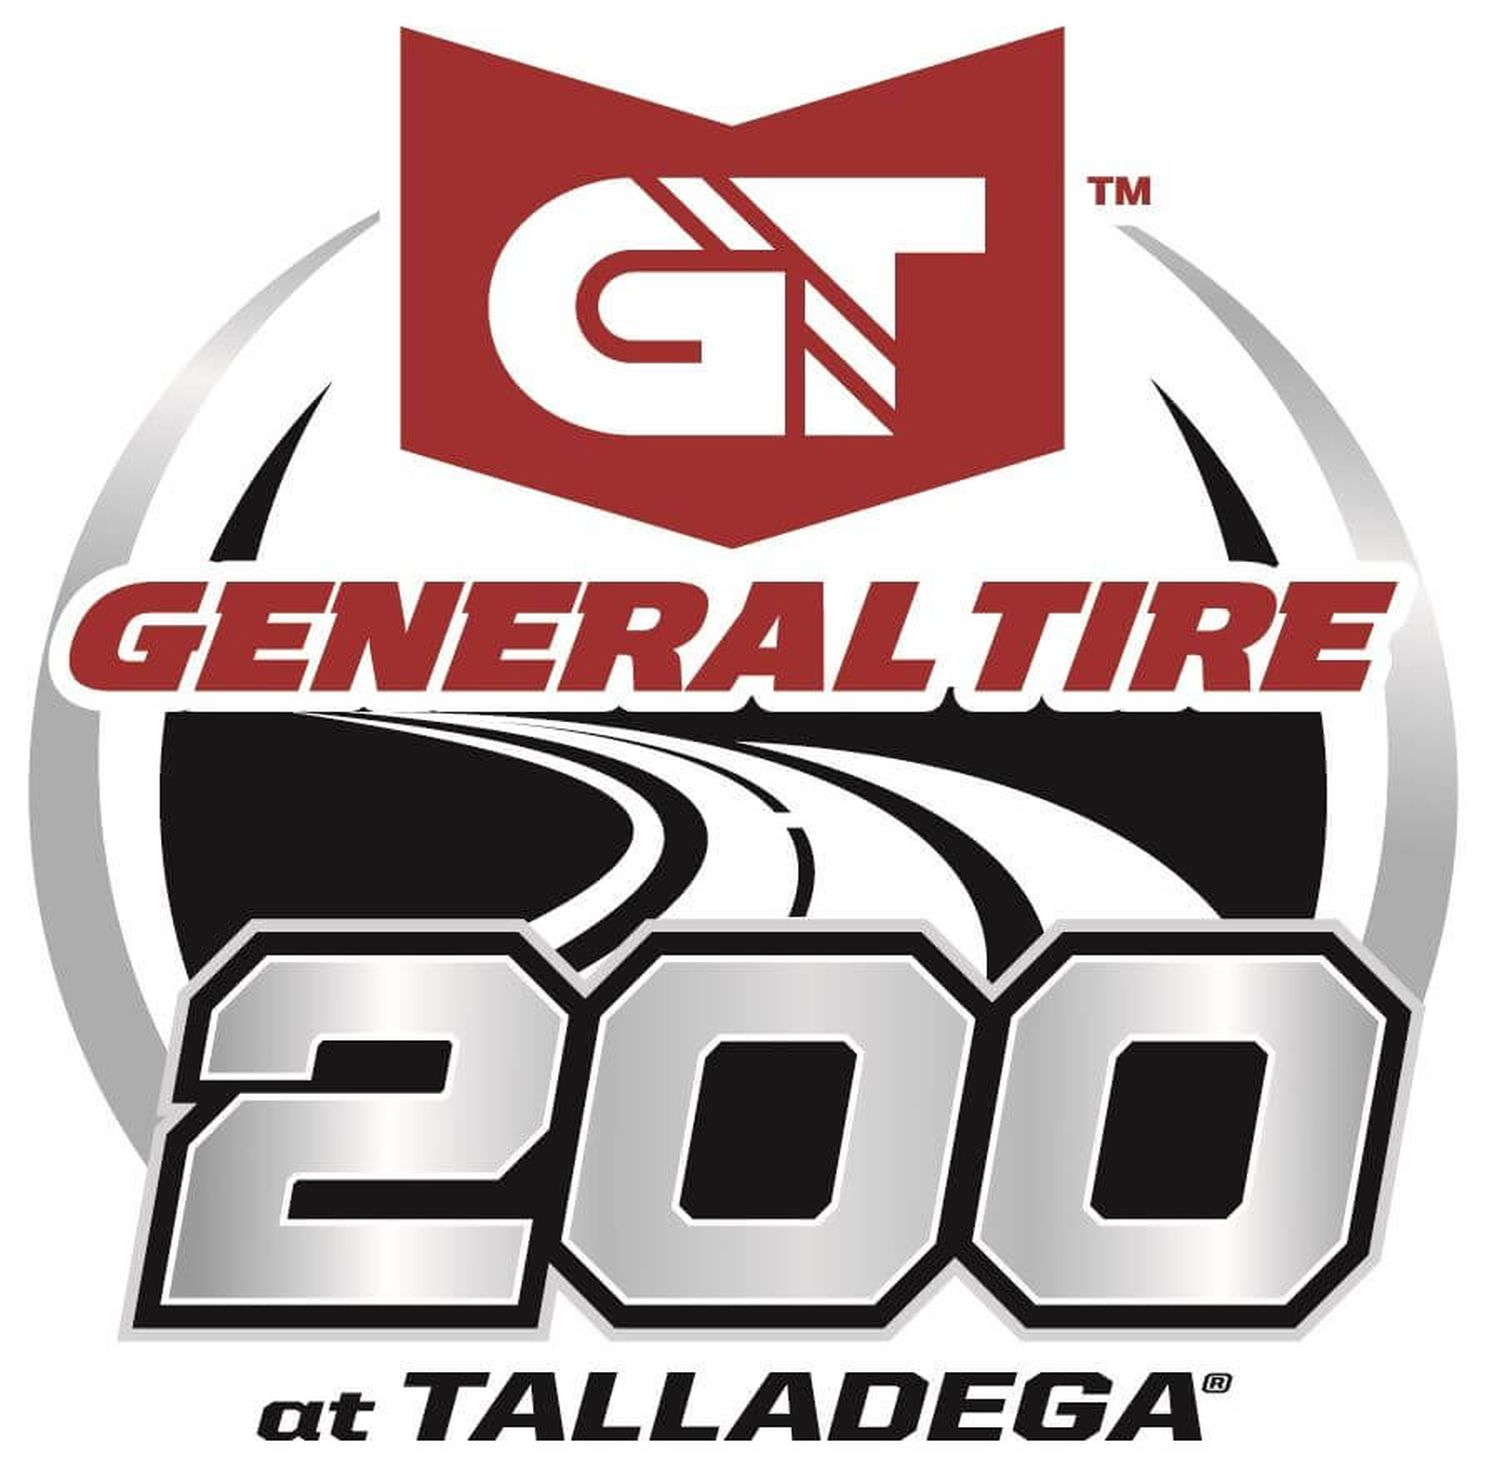 arca qualifying canceled at talladega general tire 200 field set by rh catchfence com general tire logansport in general tire logo image